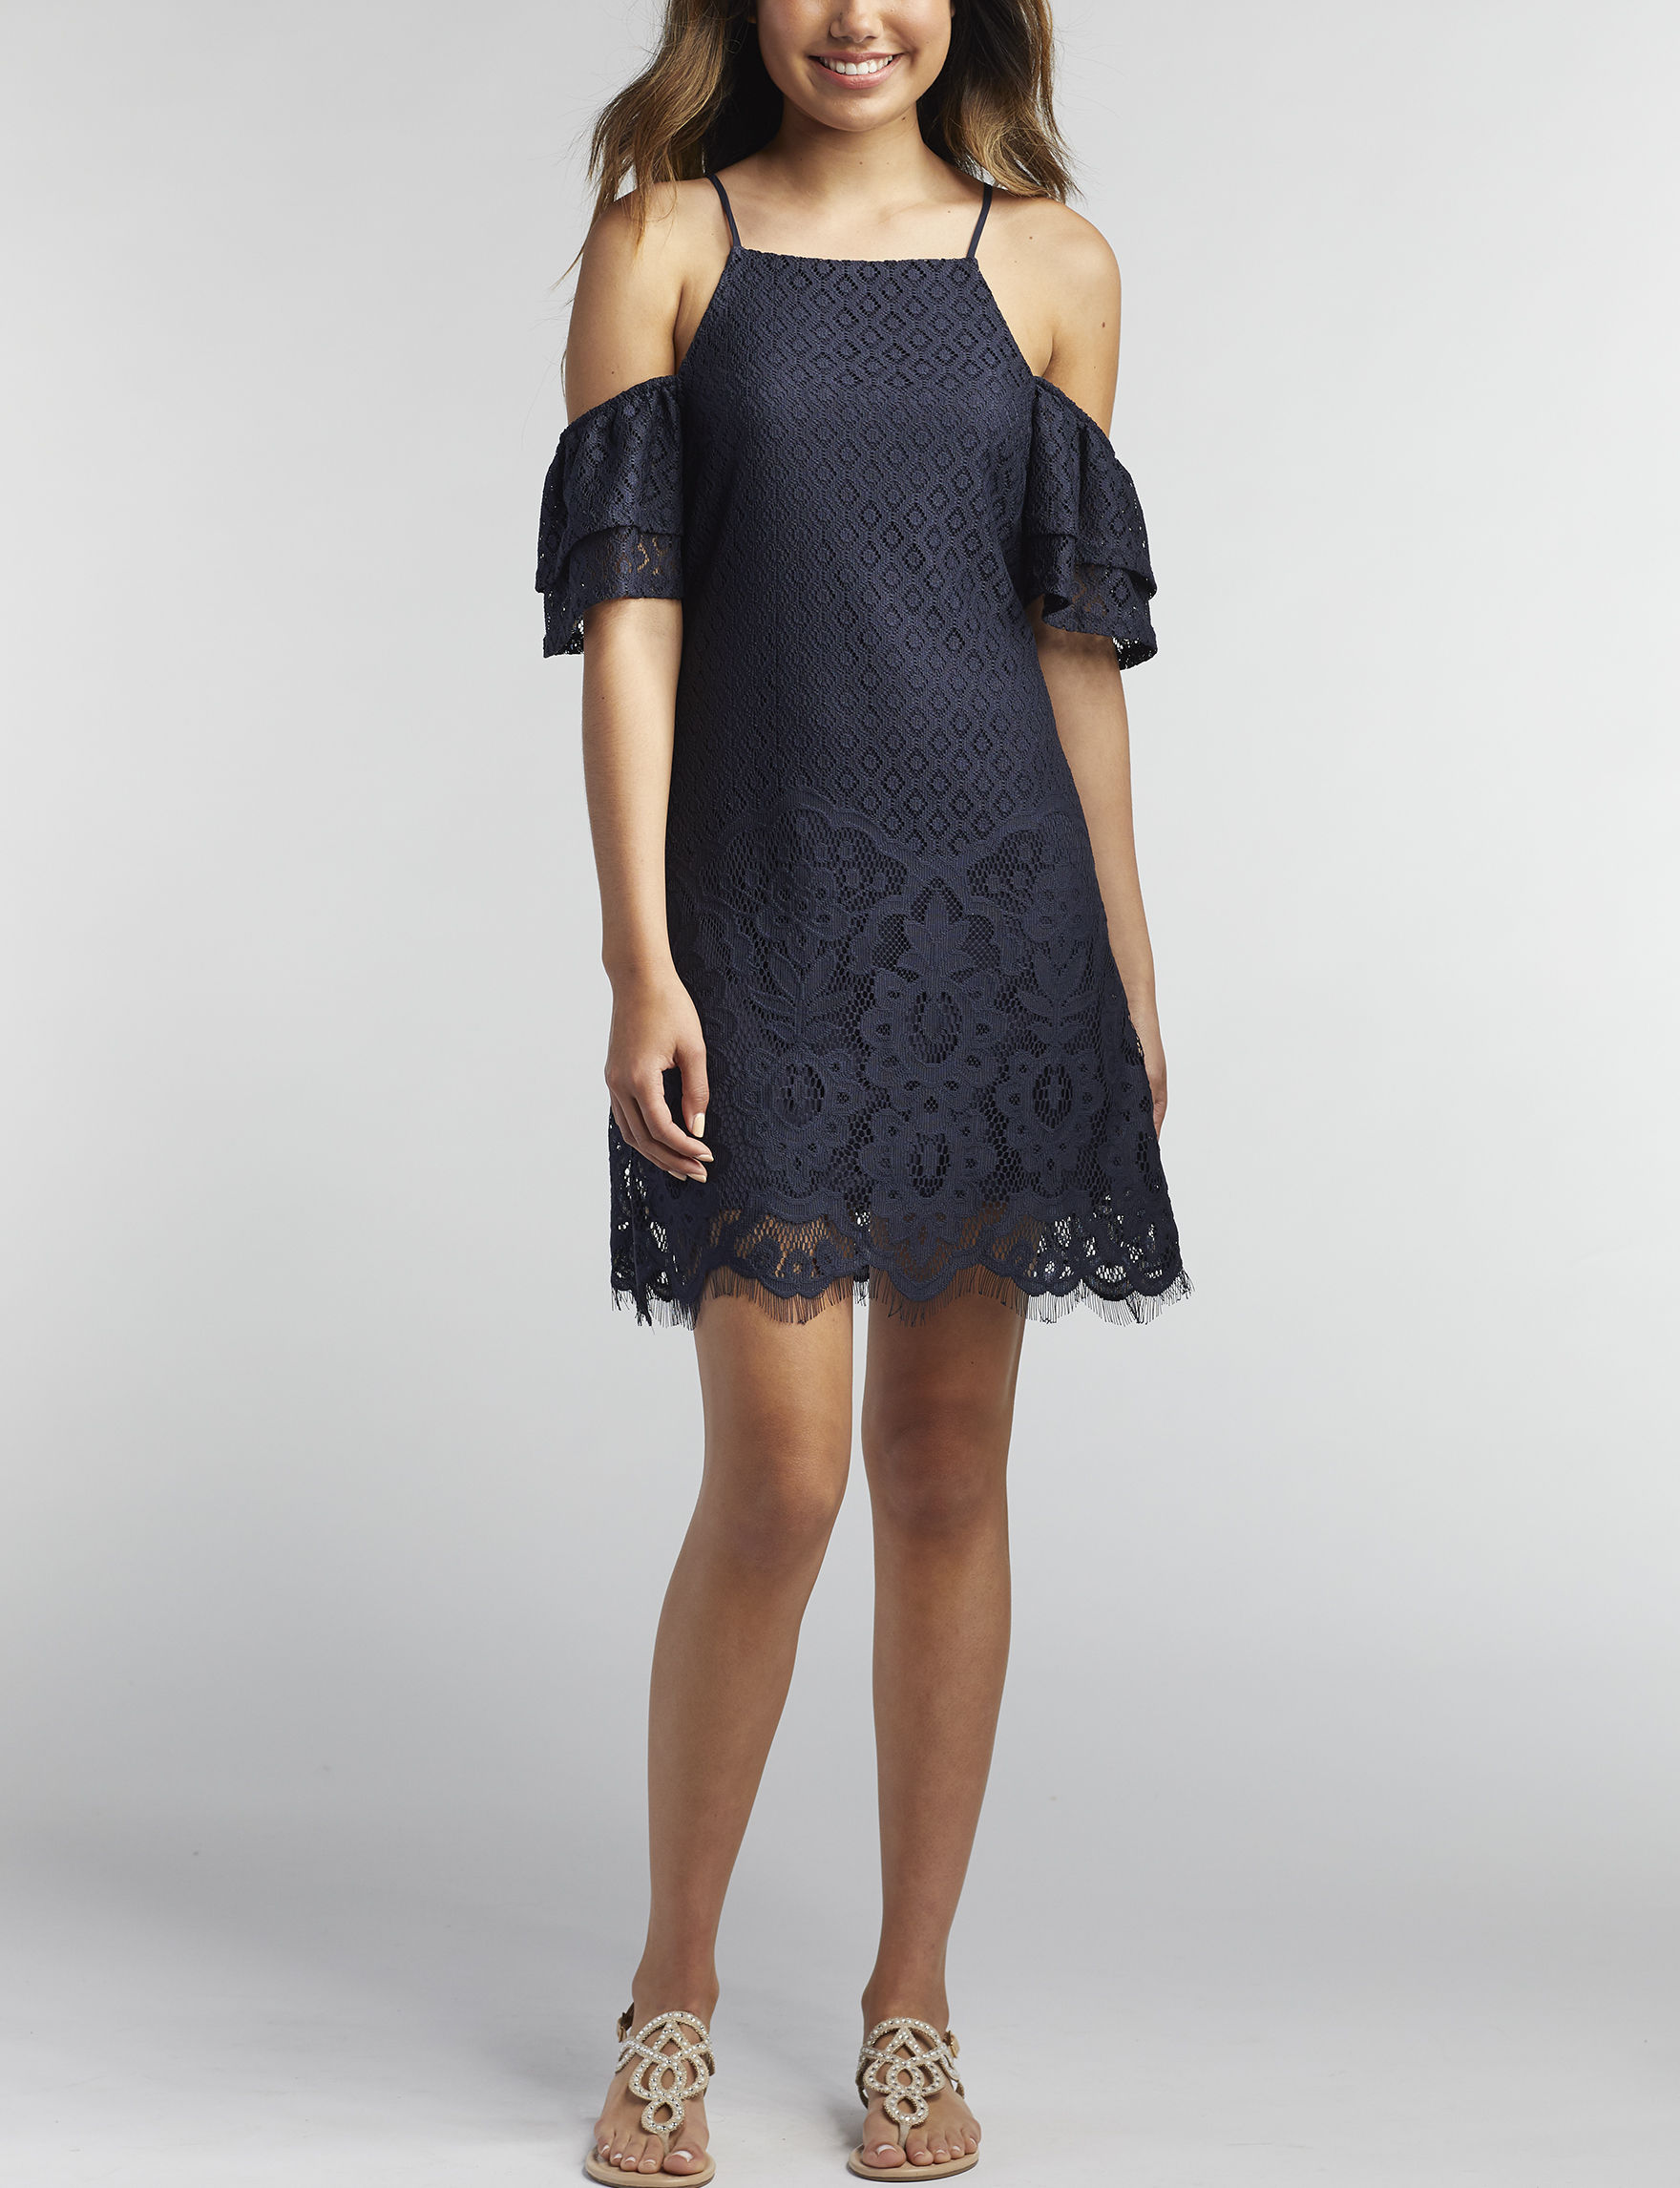 Speechless Navy Cocktail & Party Everyday & Casual Shift Dresses Sundresses